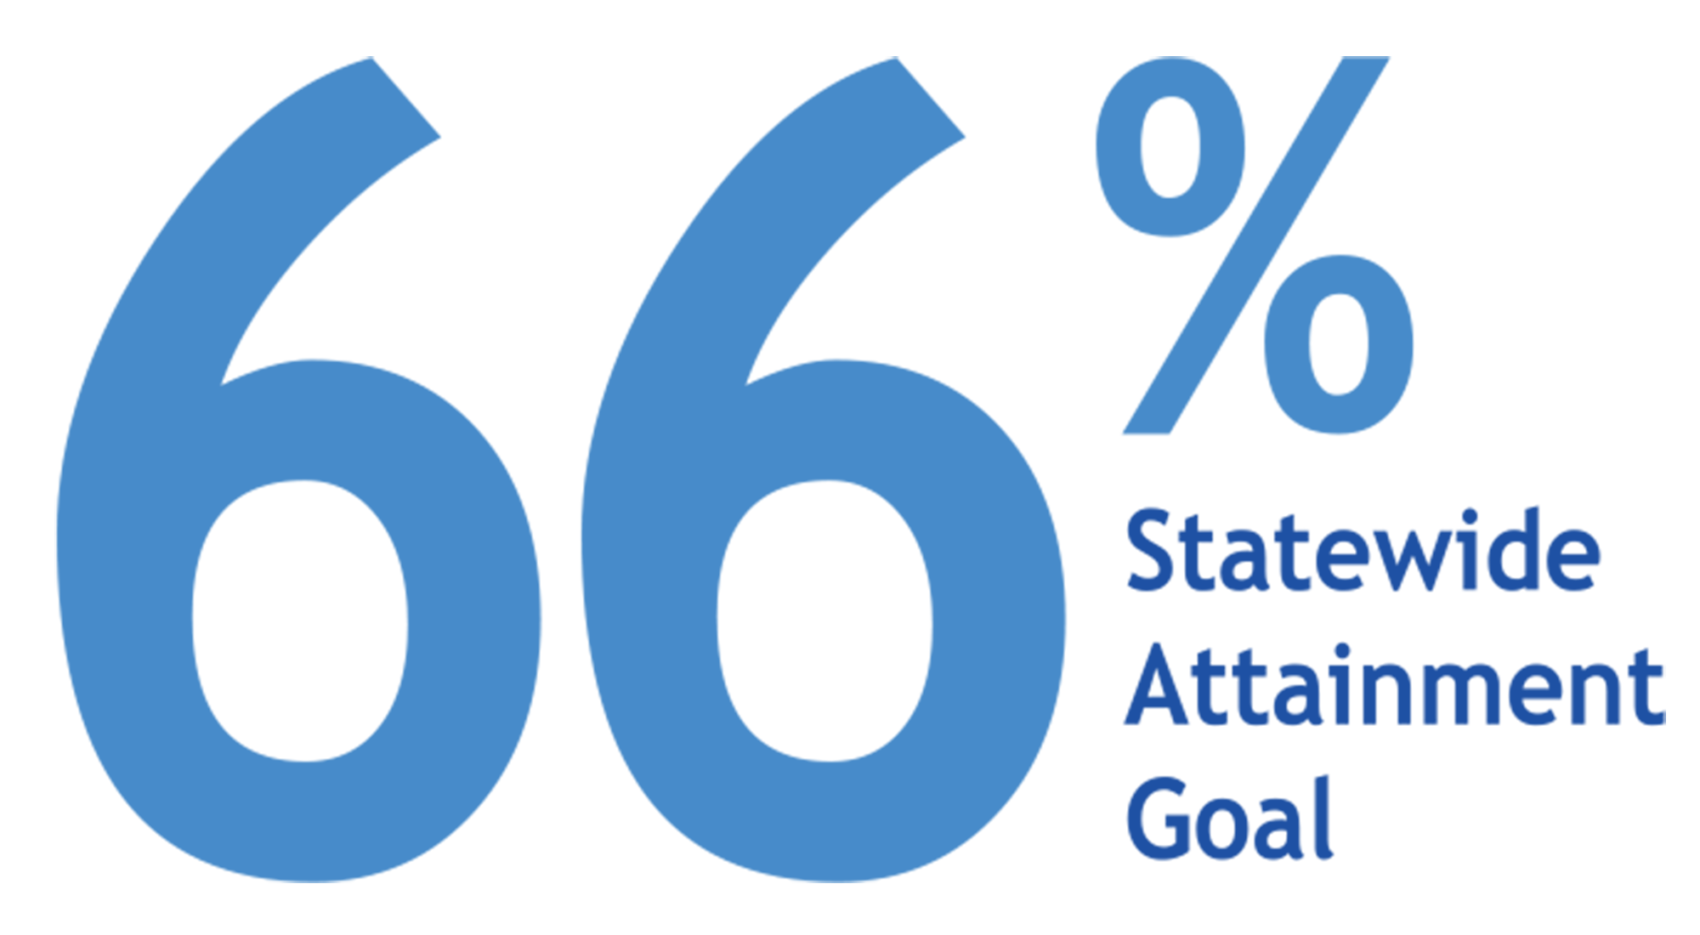 66 Percent Statewide Attainment